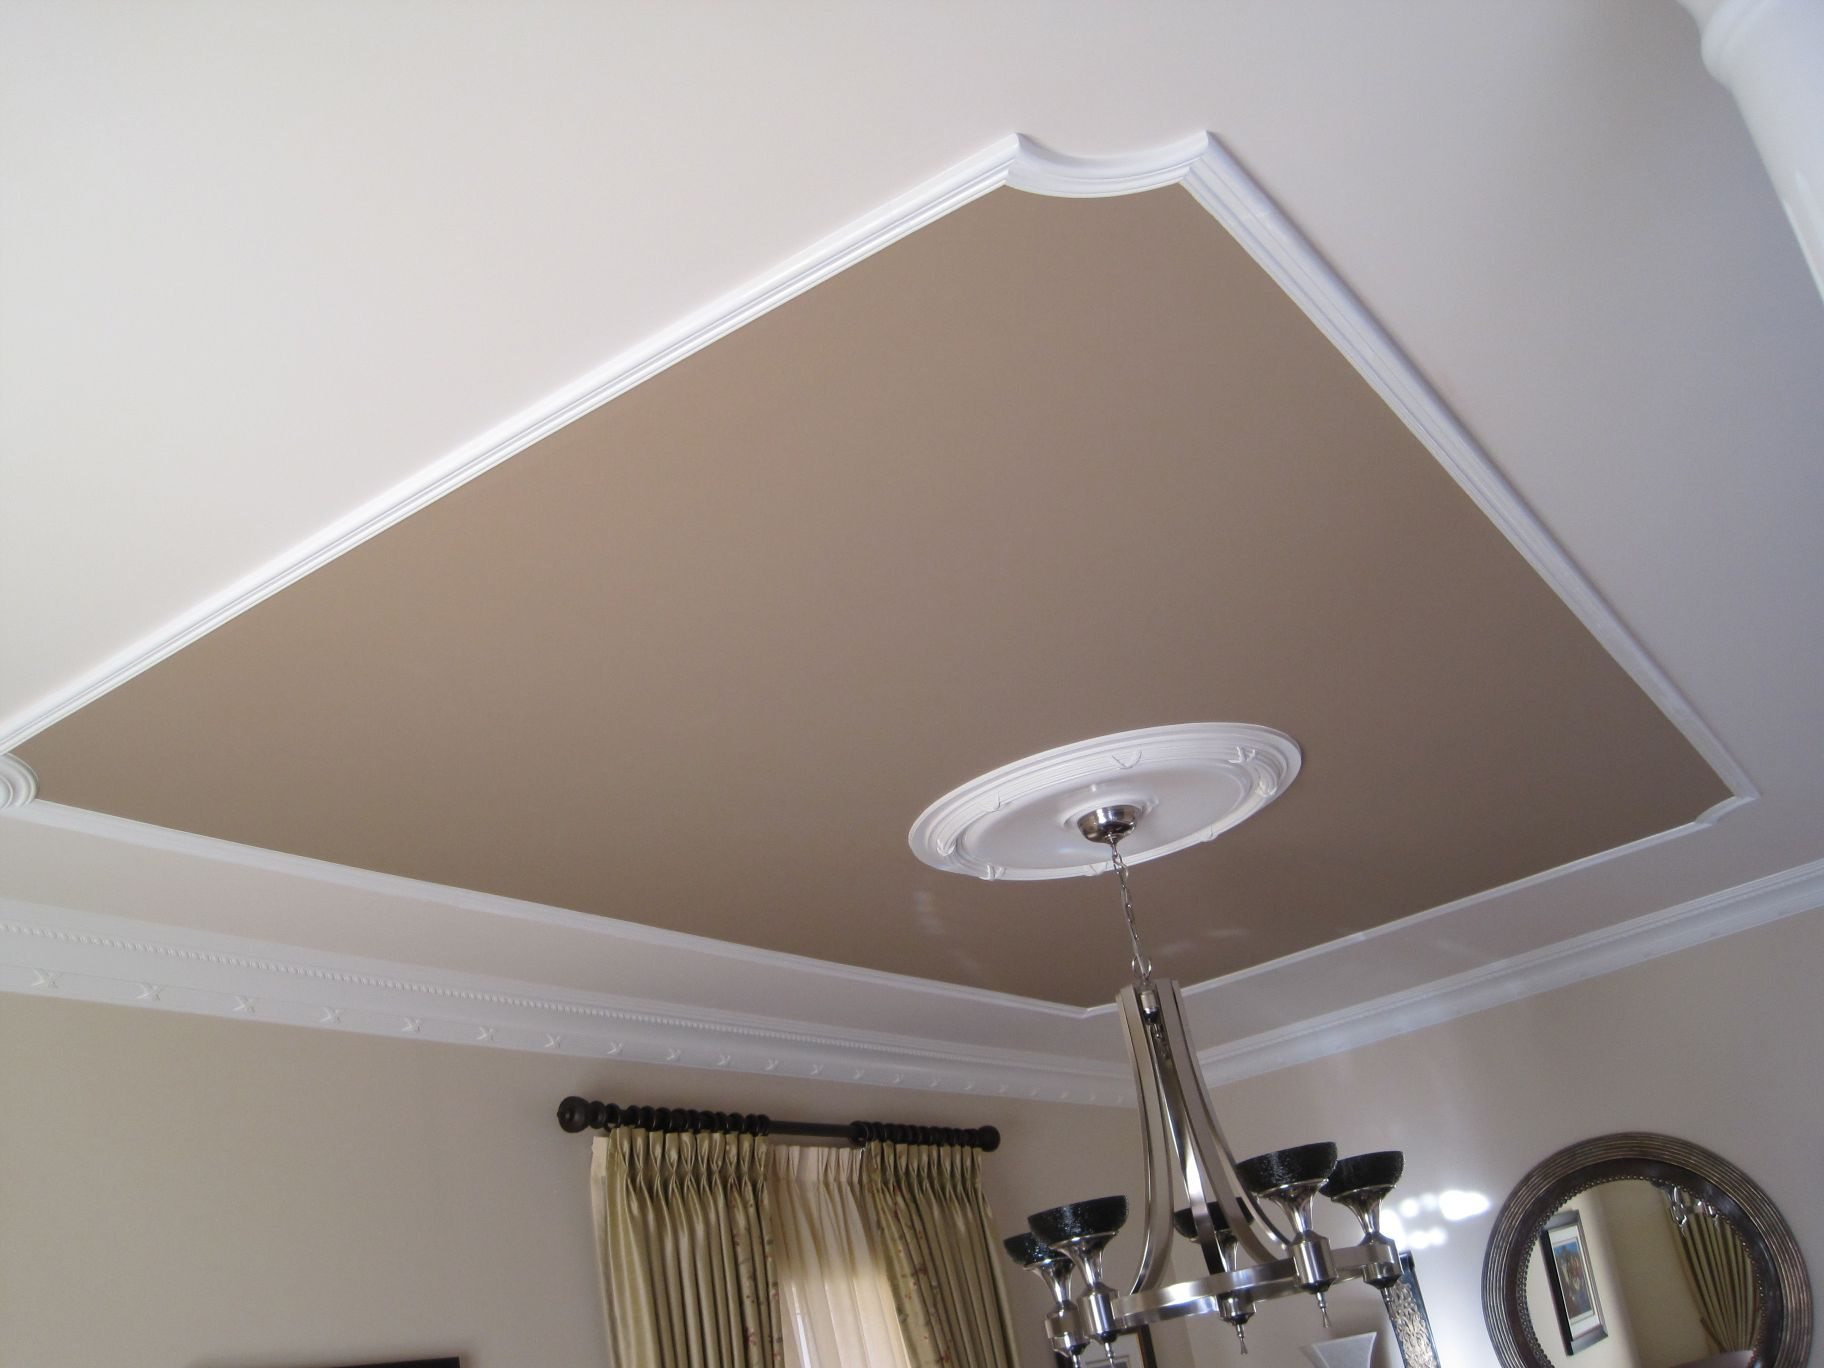 Bedroom Ceiling Moulding Baseboard Used On Ceiling And Moulding On Ceiling Here